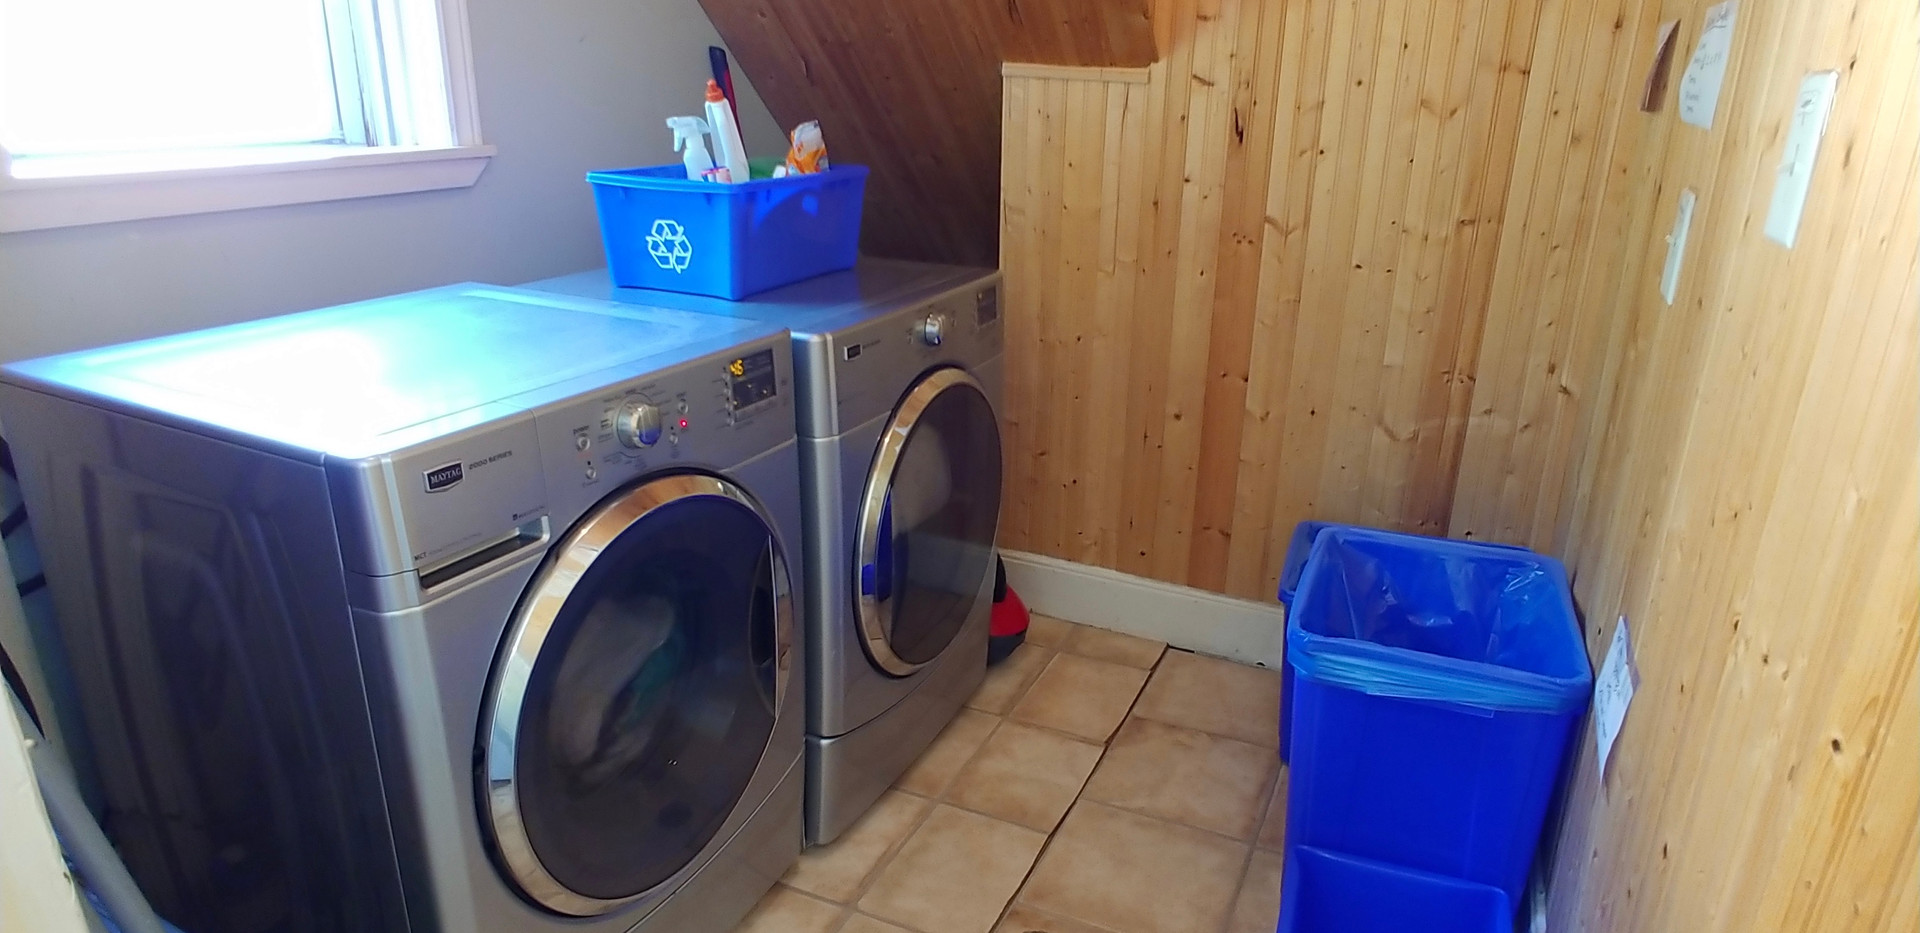 New large capacity laundry machines on main floor.  Back deck also has a clothes line.